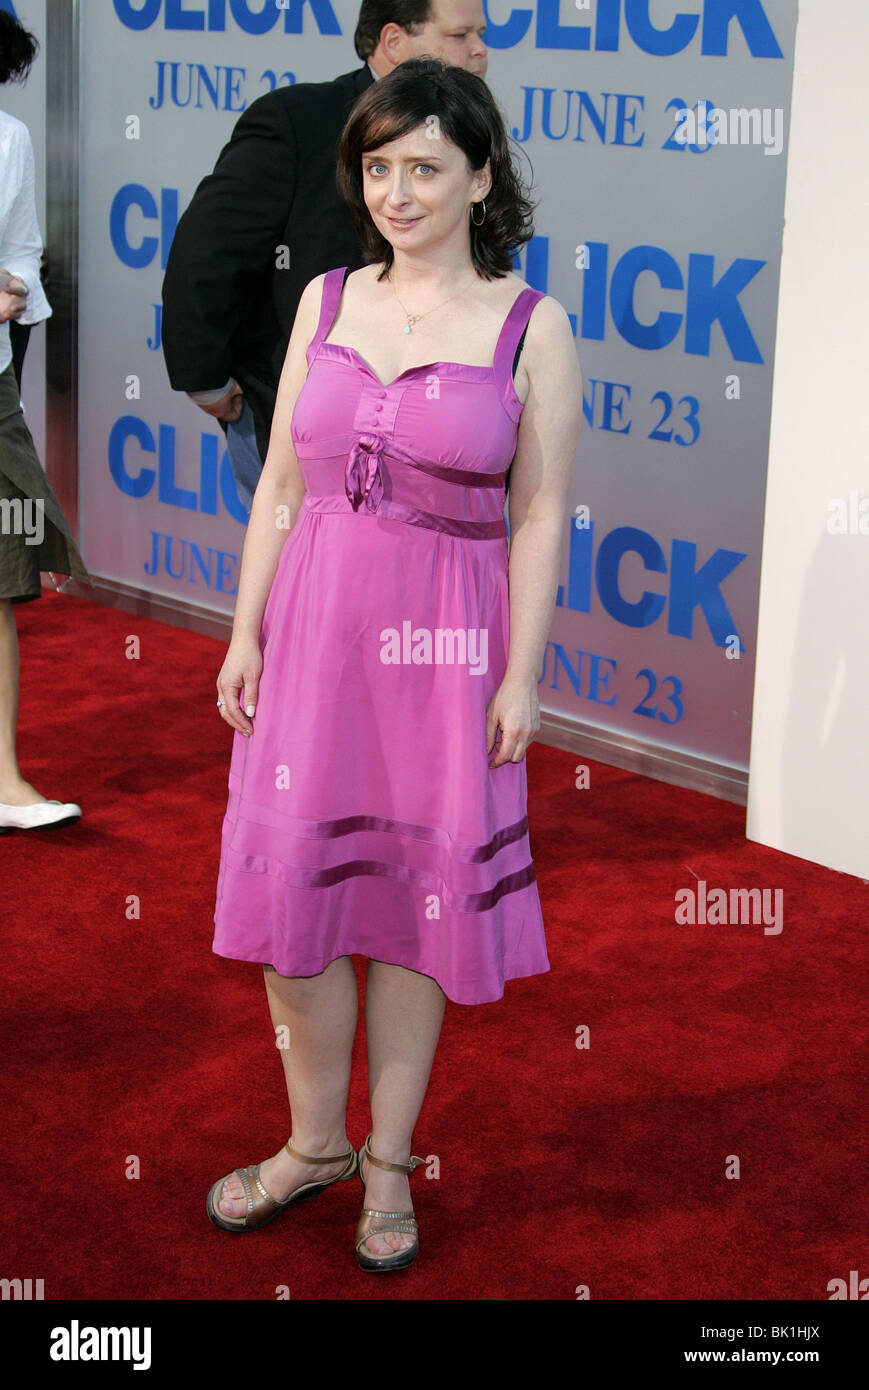 Rachel Dratch nudes (38 foto and video), Pussy, Paparazzi, Feet, cleavage 2006